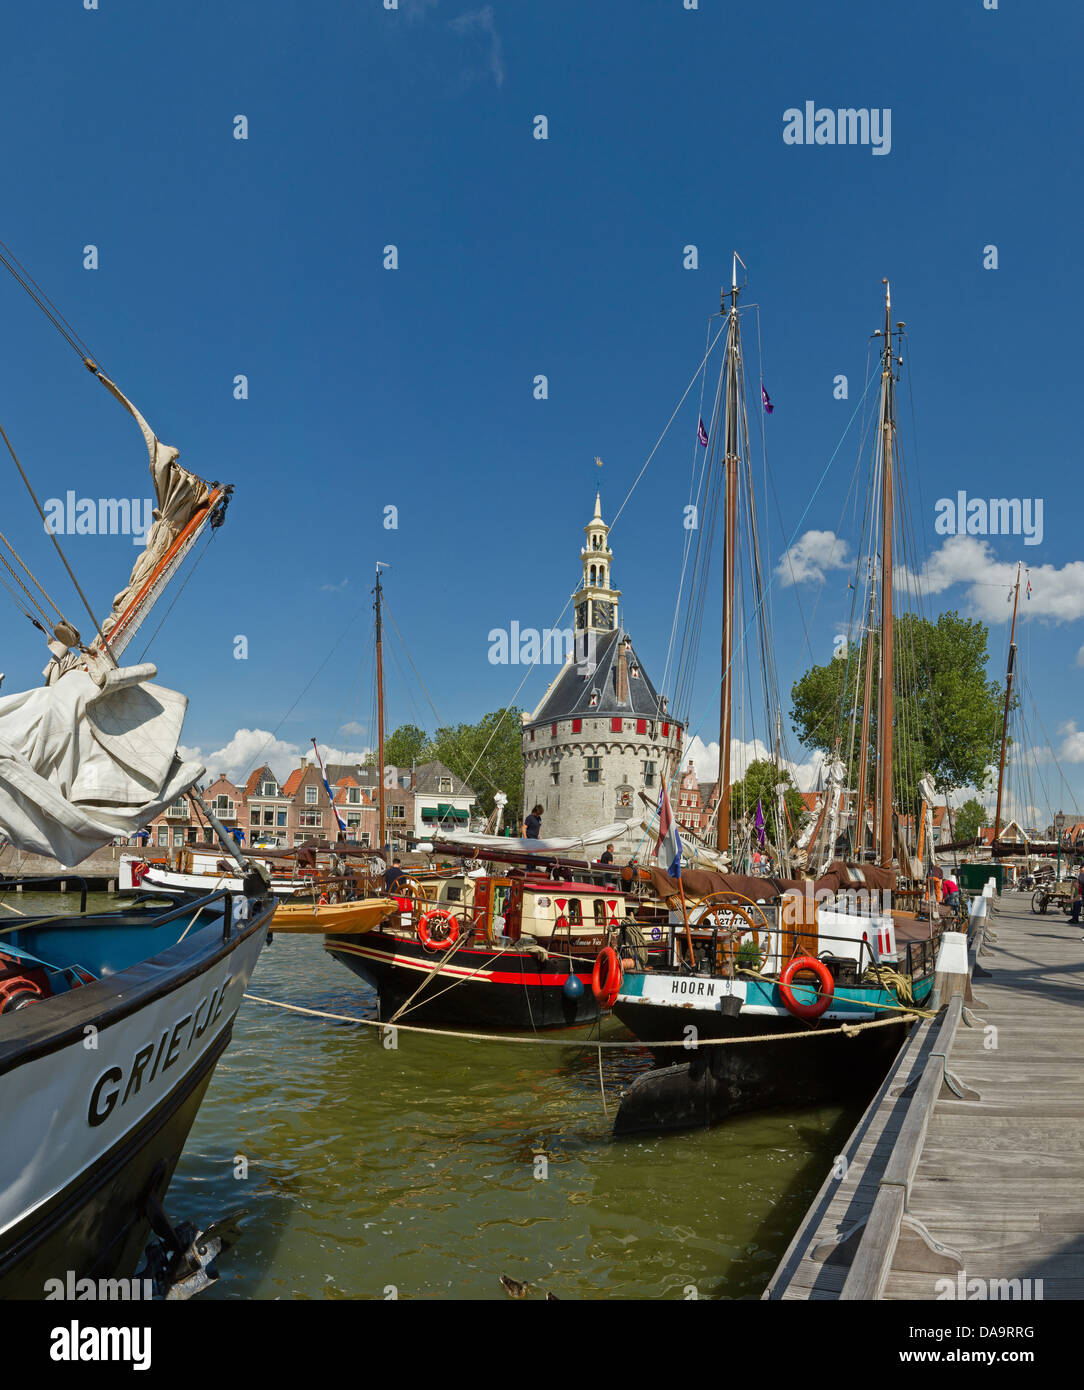 Netherlands, Holland, Europe, Hoorn, Sailing, vessels, ship, Main tower, tower, city, village, water, summer, ships, - Stock Image